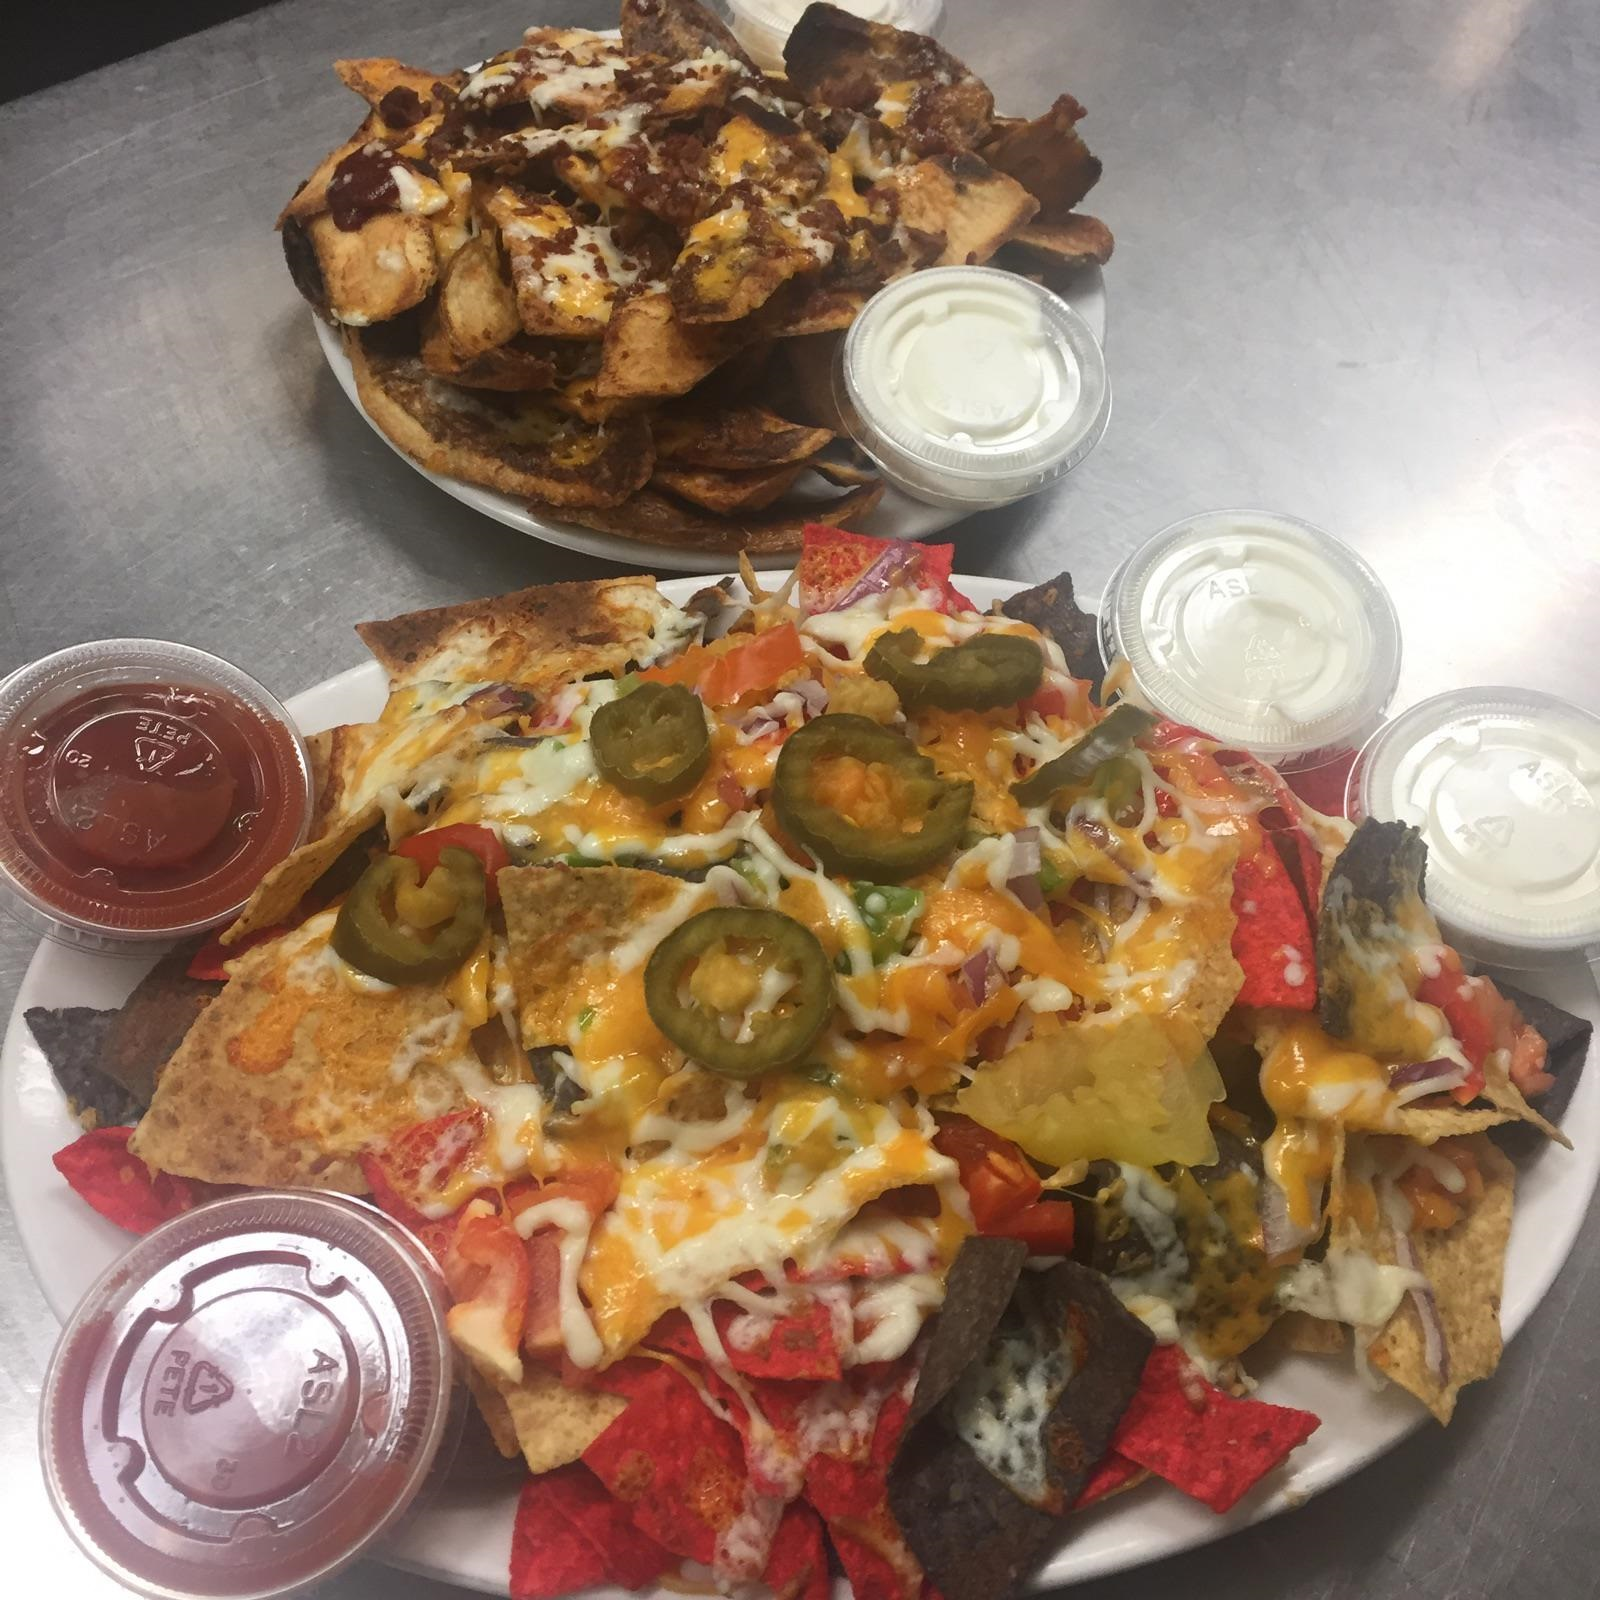 Picture of nachos and potato skins